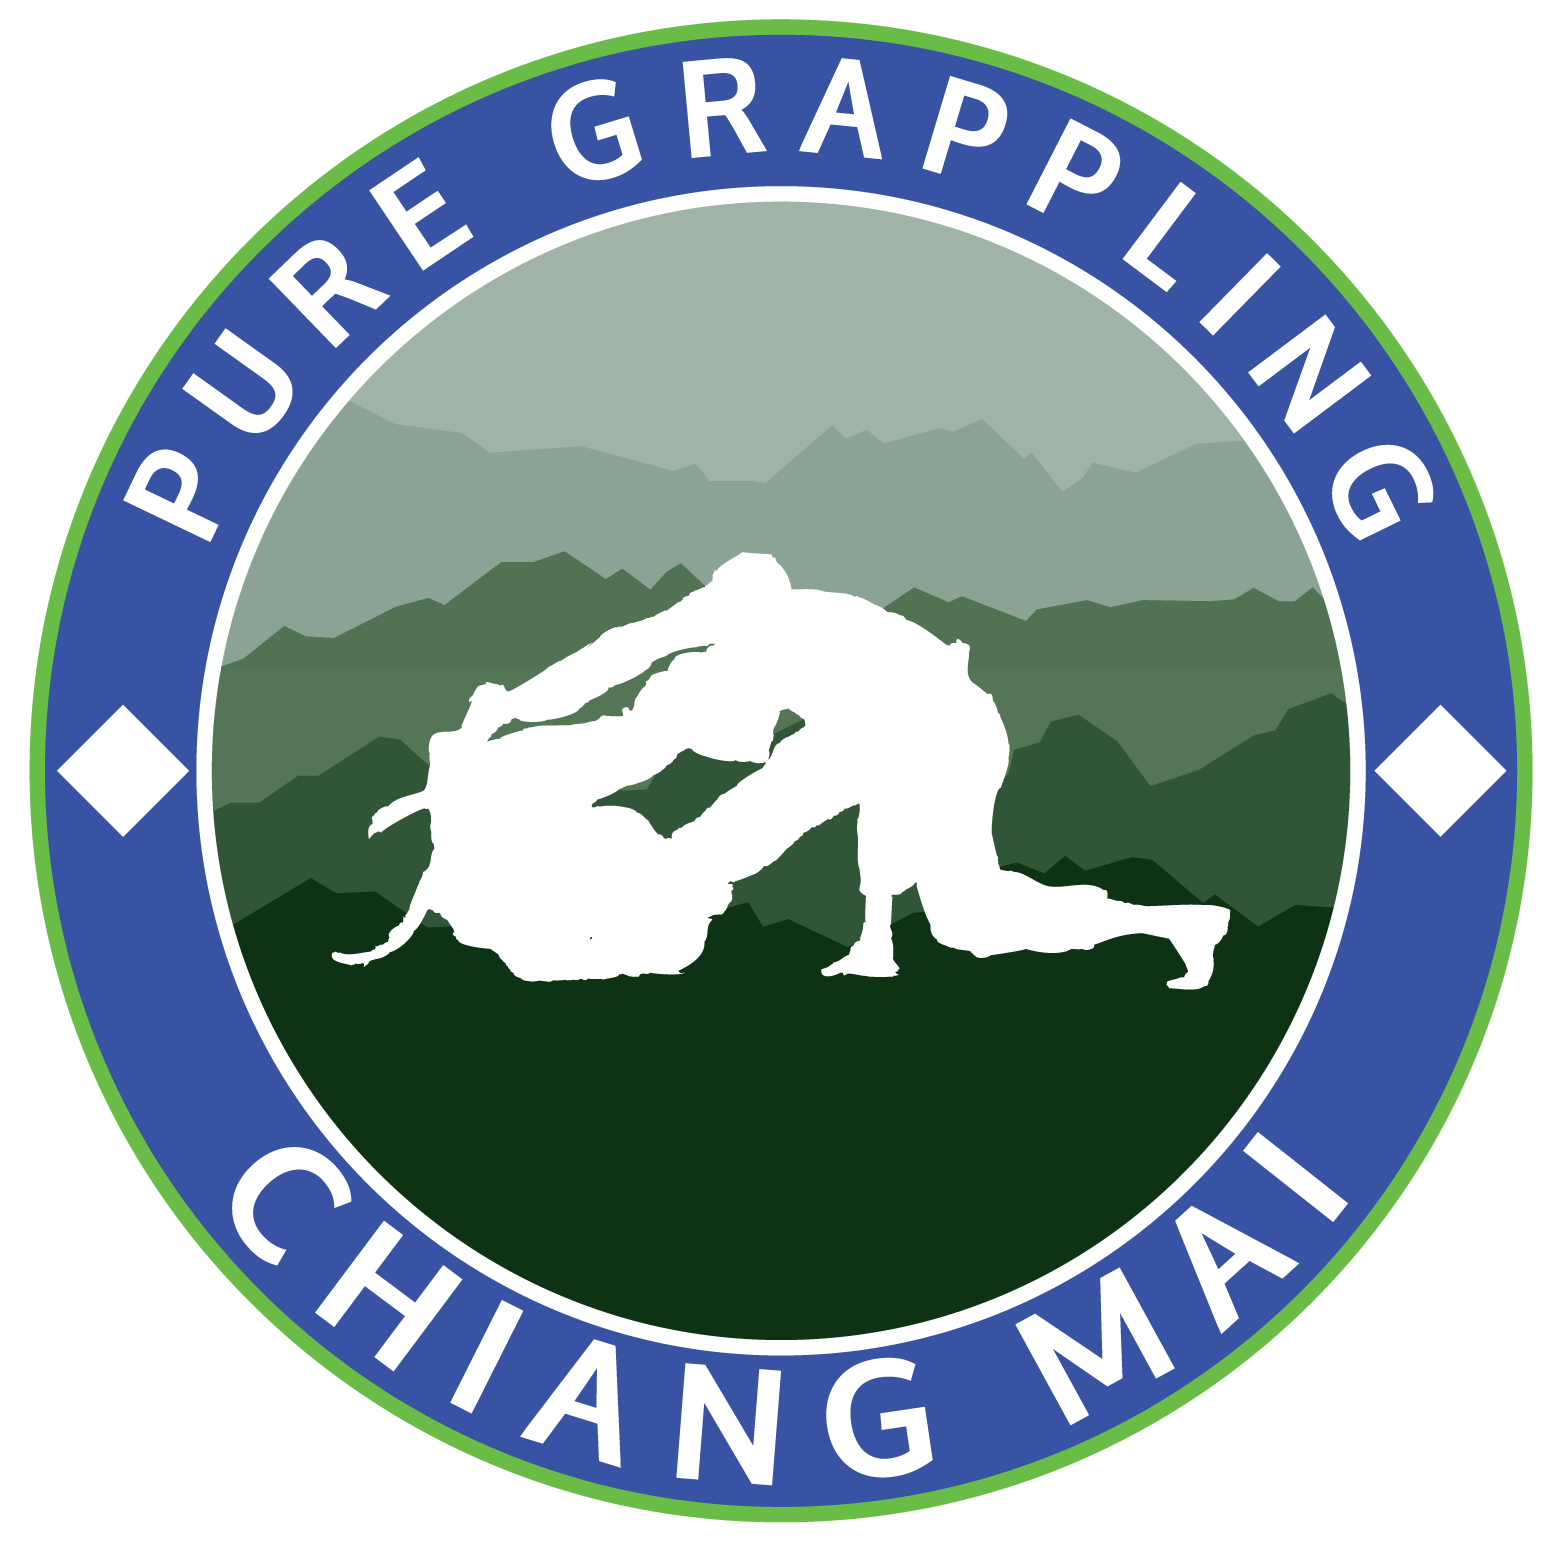 Pure Grappling